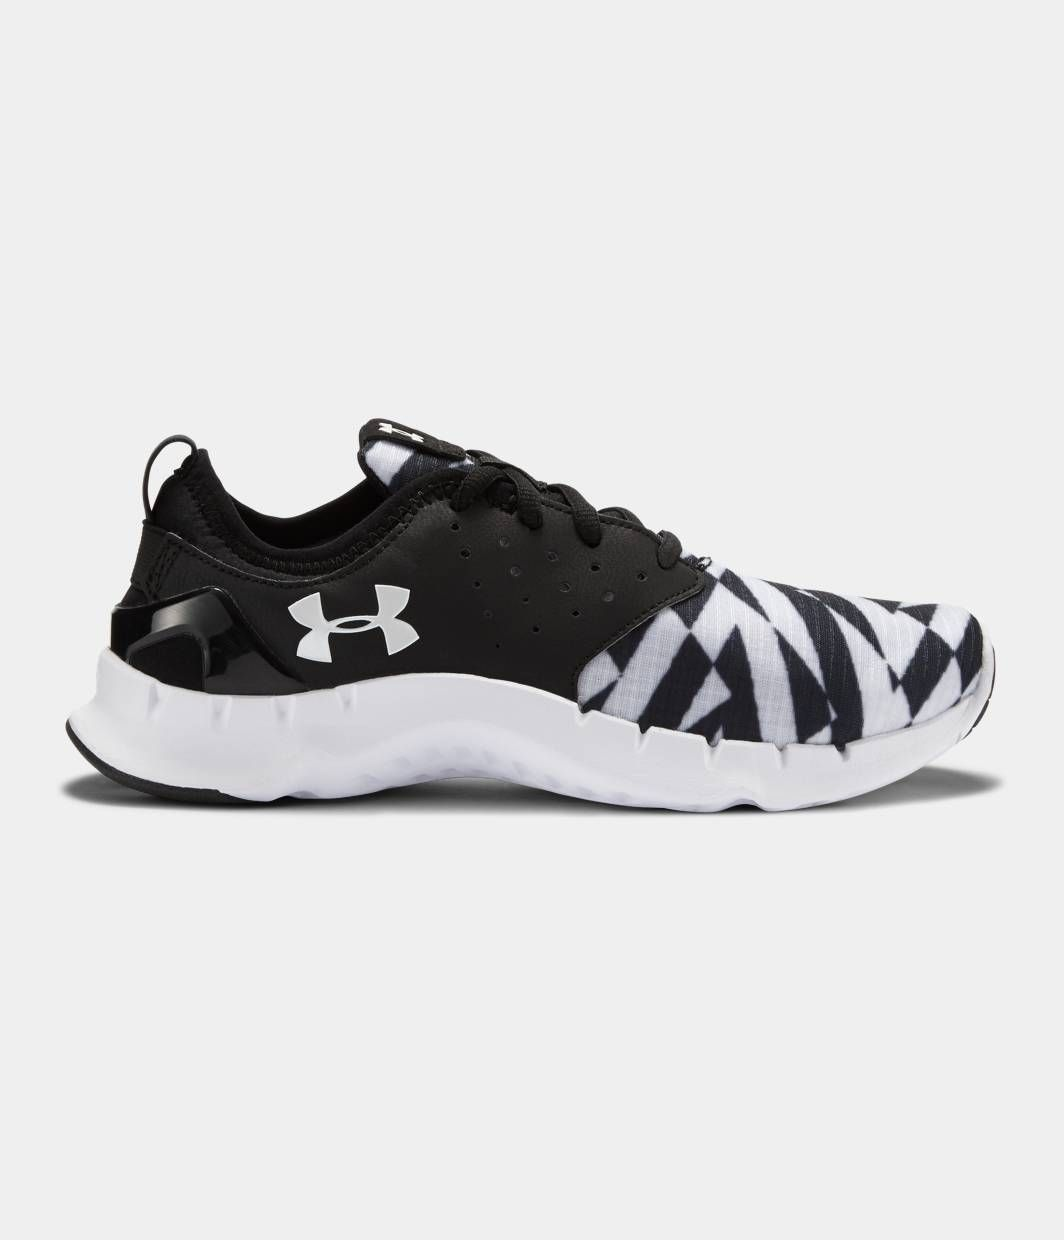 black under armor shoes